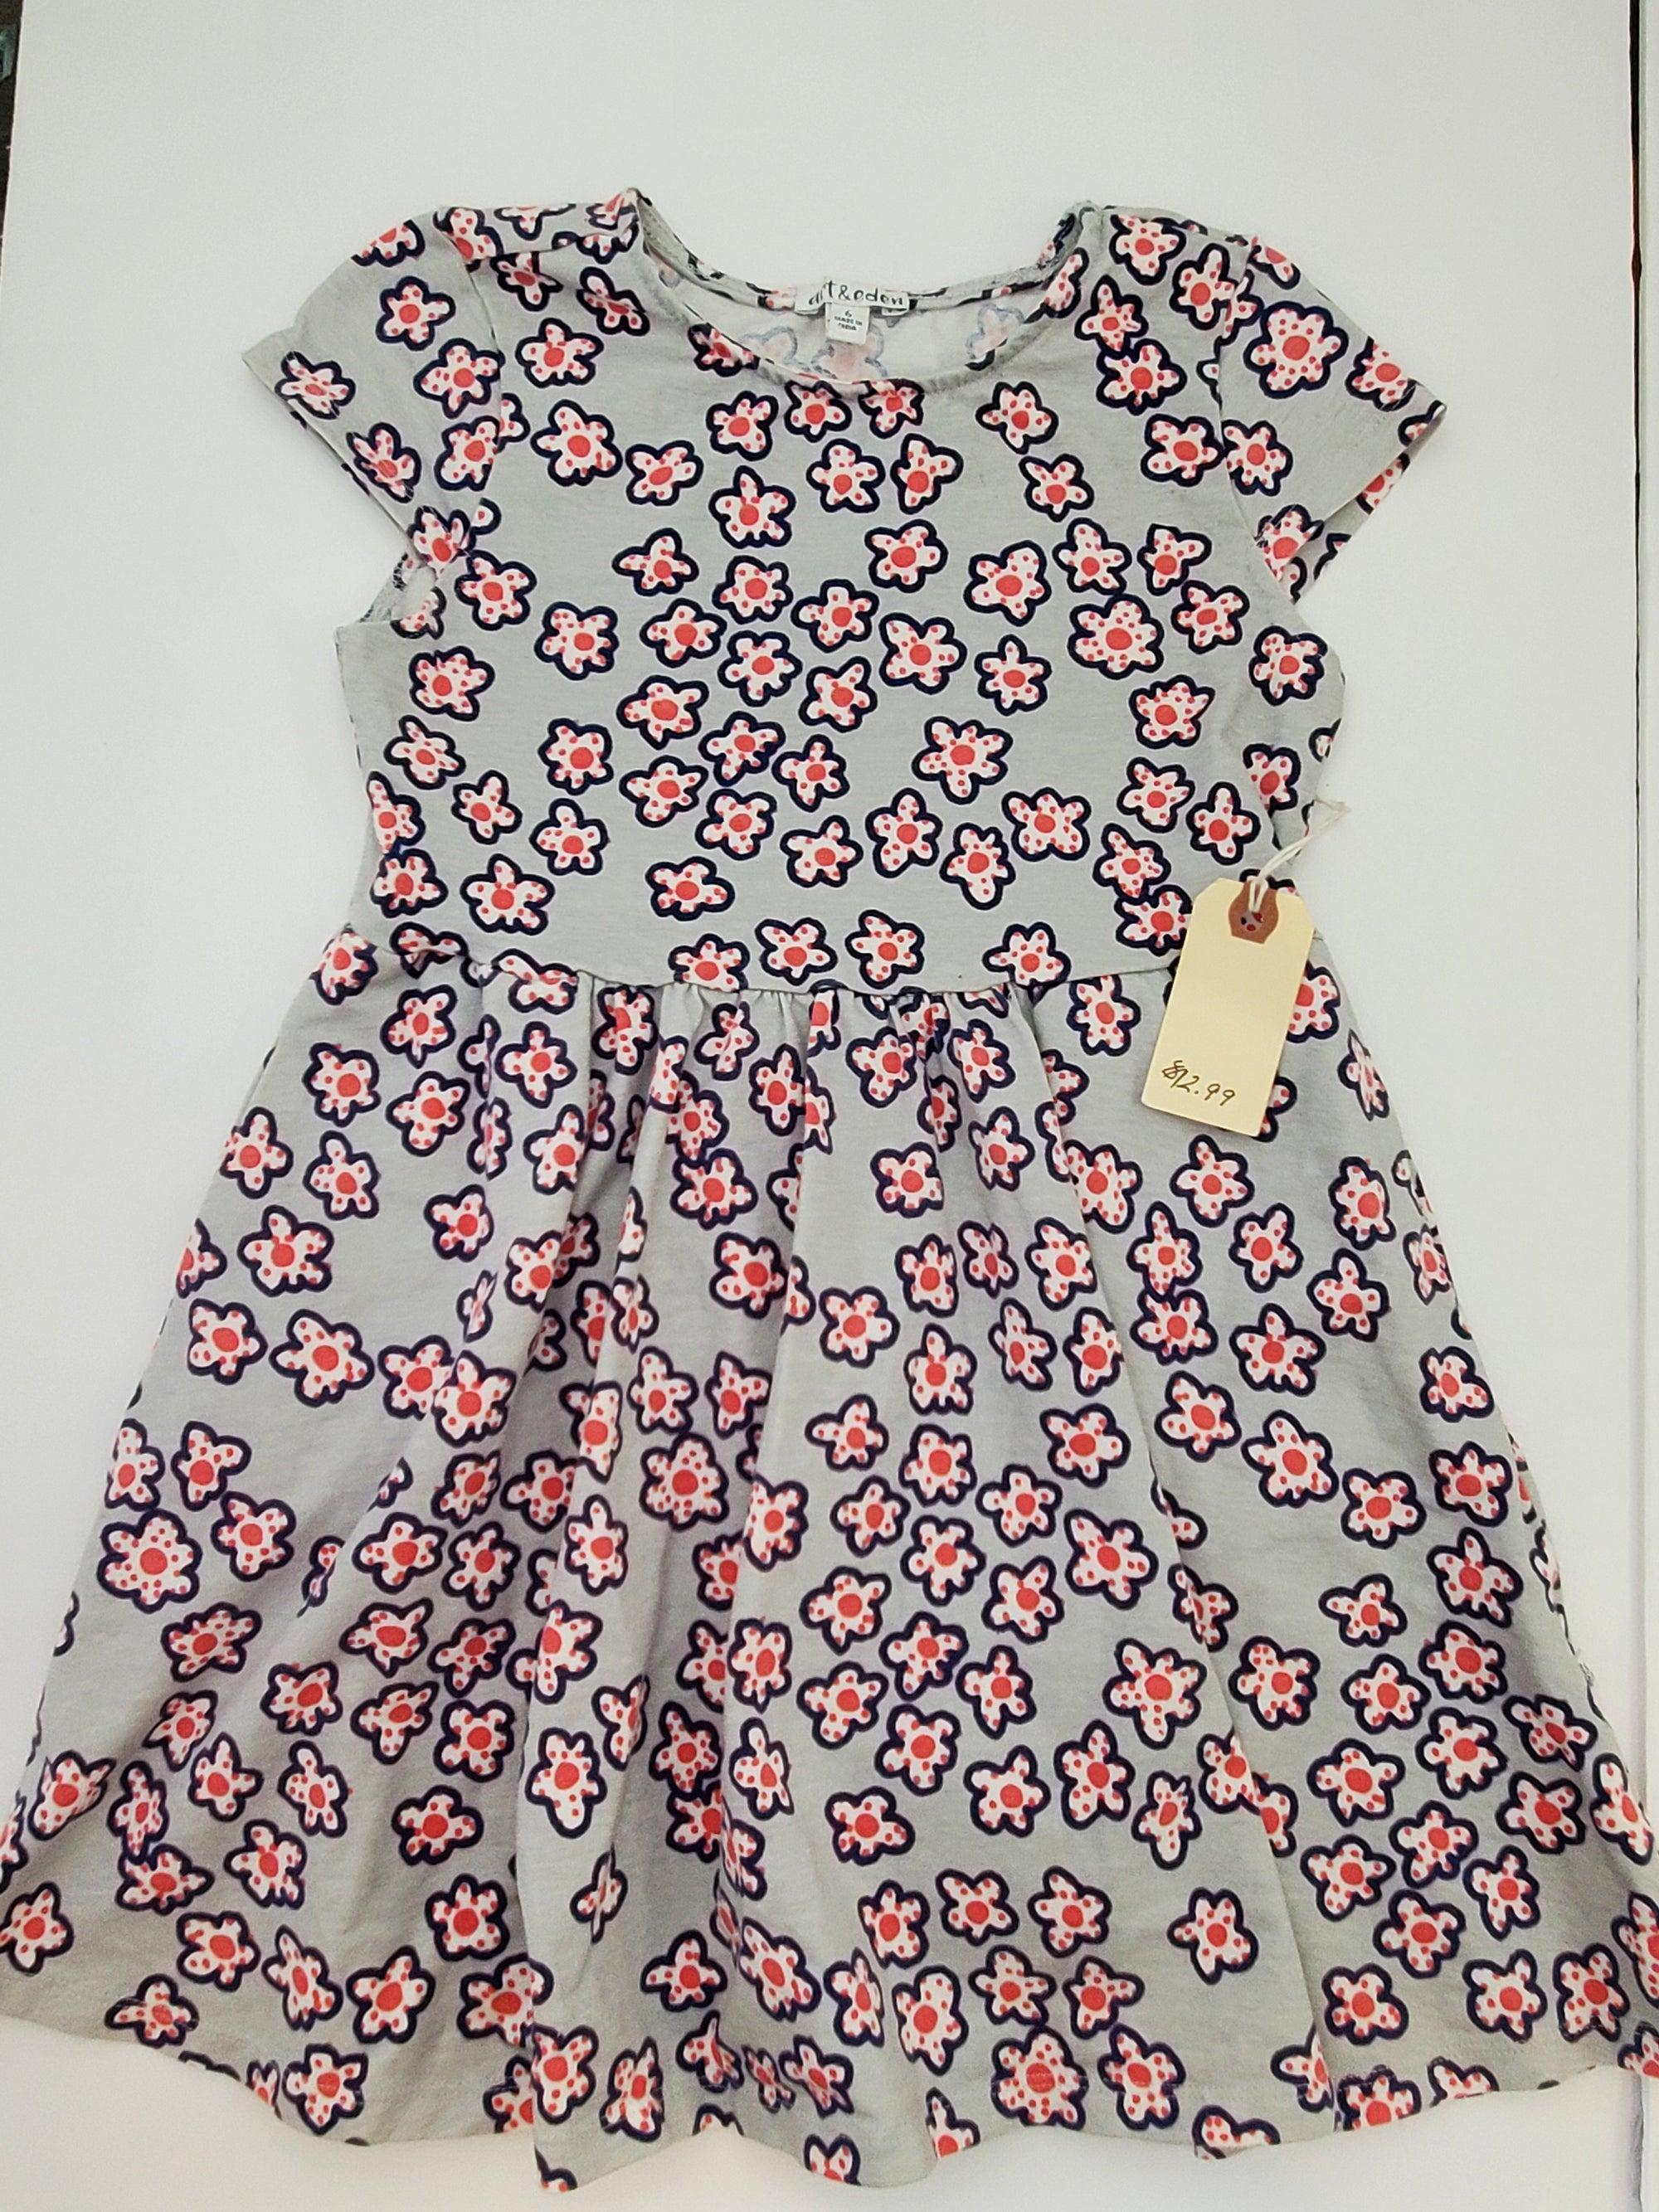 Resale 6Y Art & Eden Organic Cotton Dress - Blue Floral